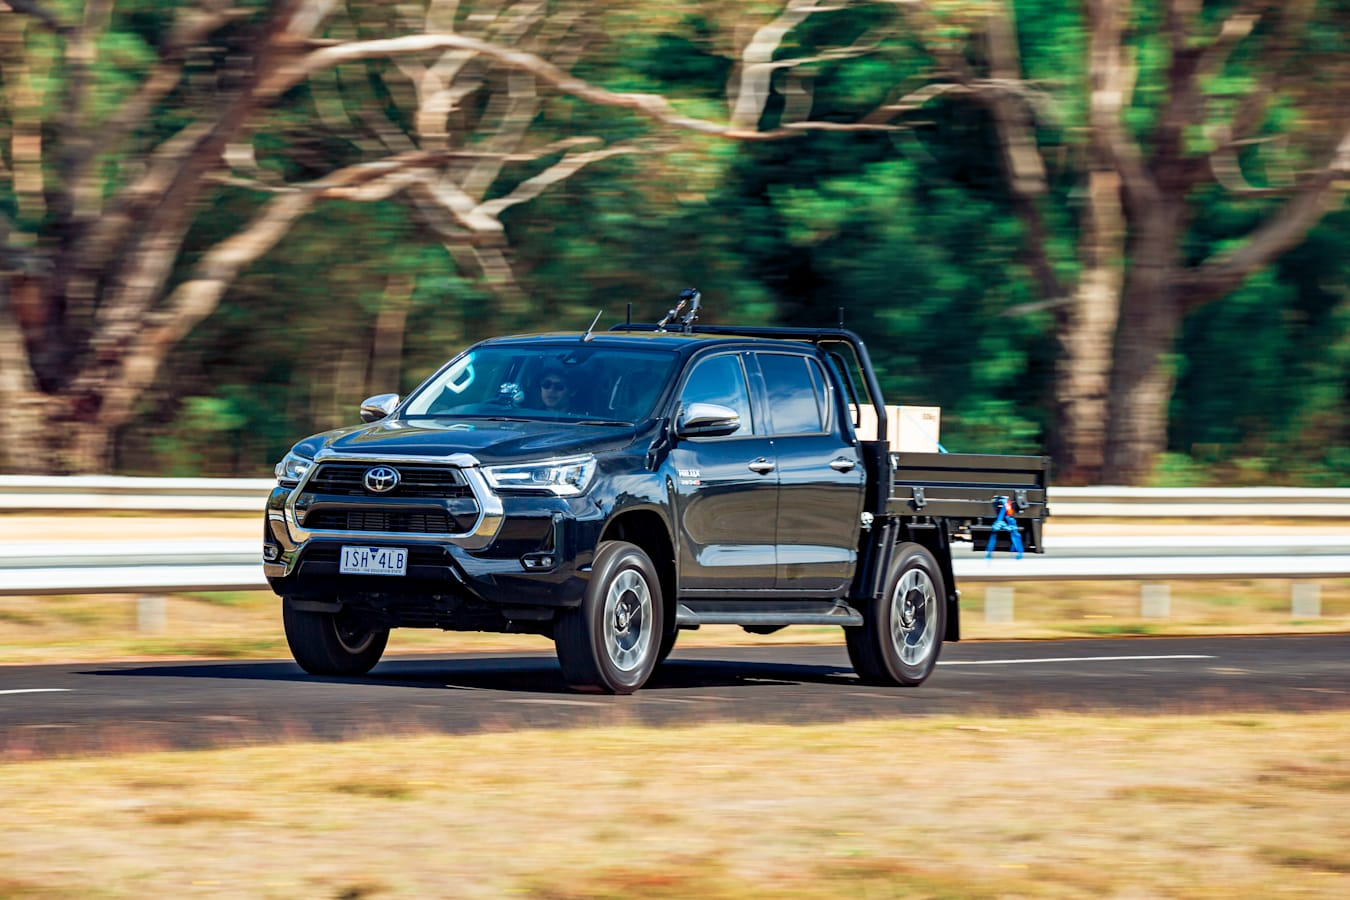 4 X 4 Australia Comparisons 2021 May 21 Toyota Hilux SR 5 On Road Review